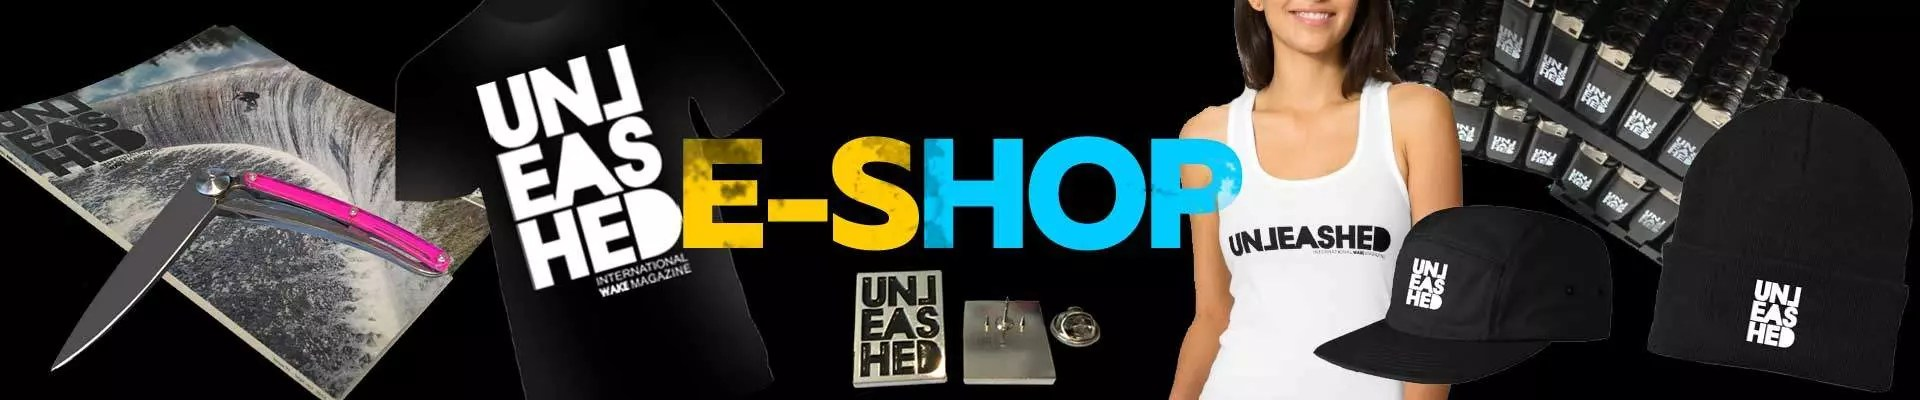 unleashed-wake-mag-E-Shop-3